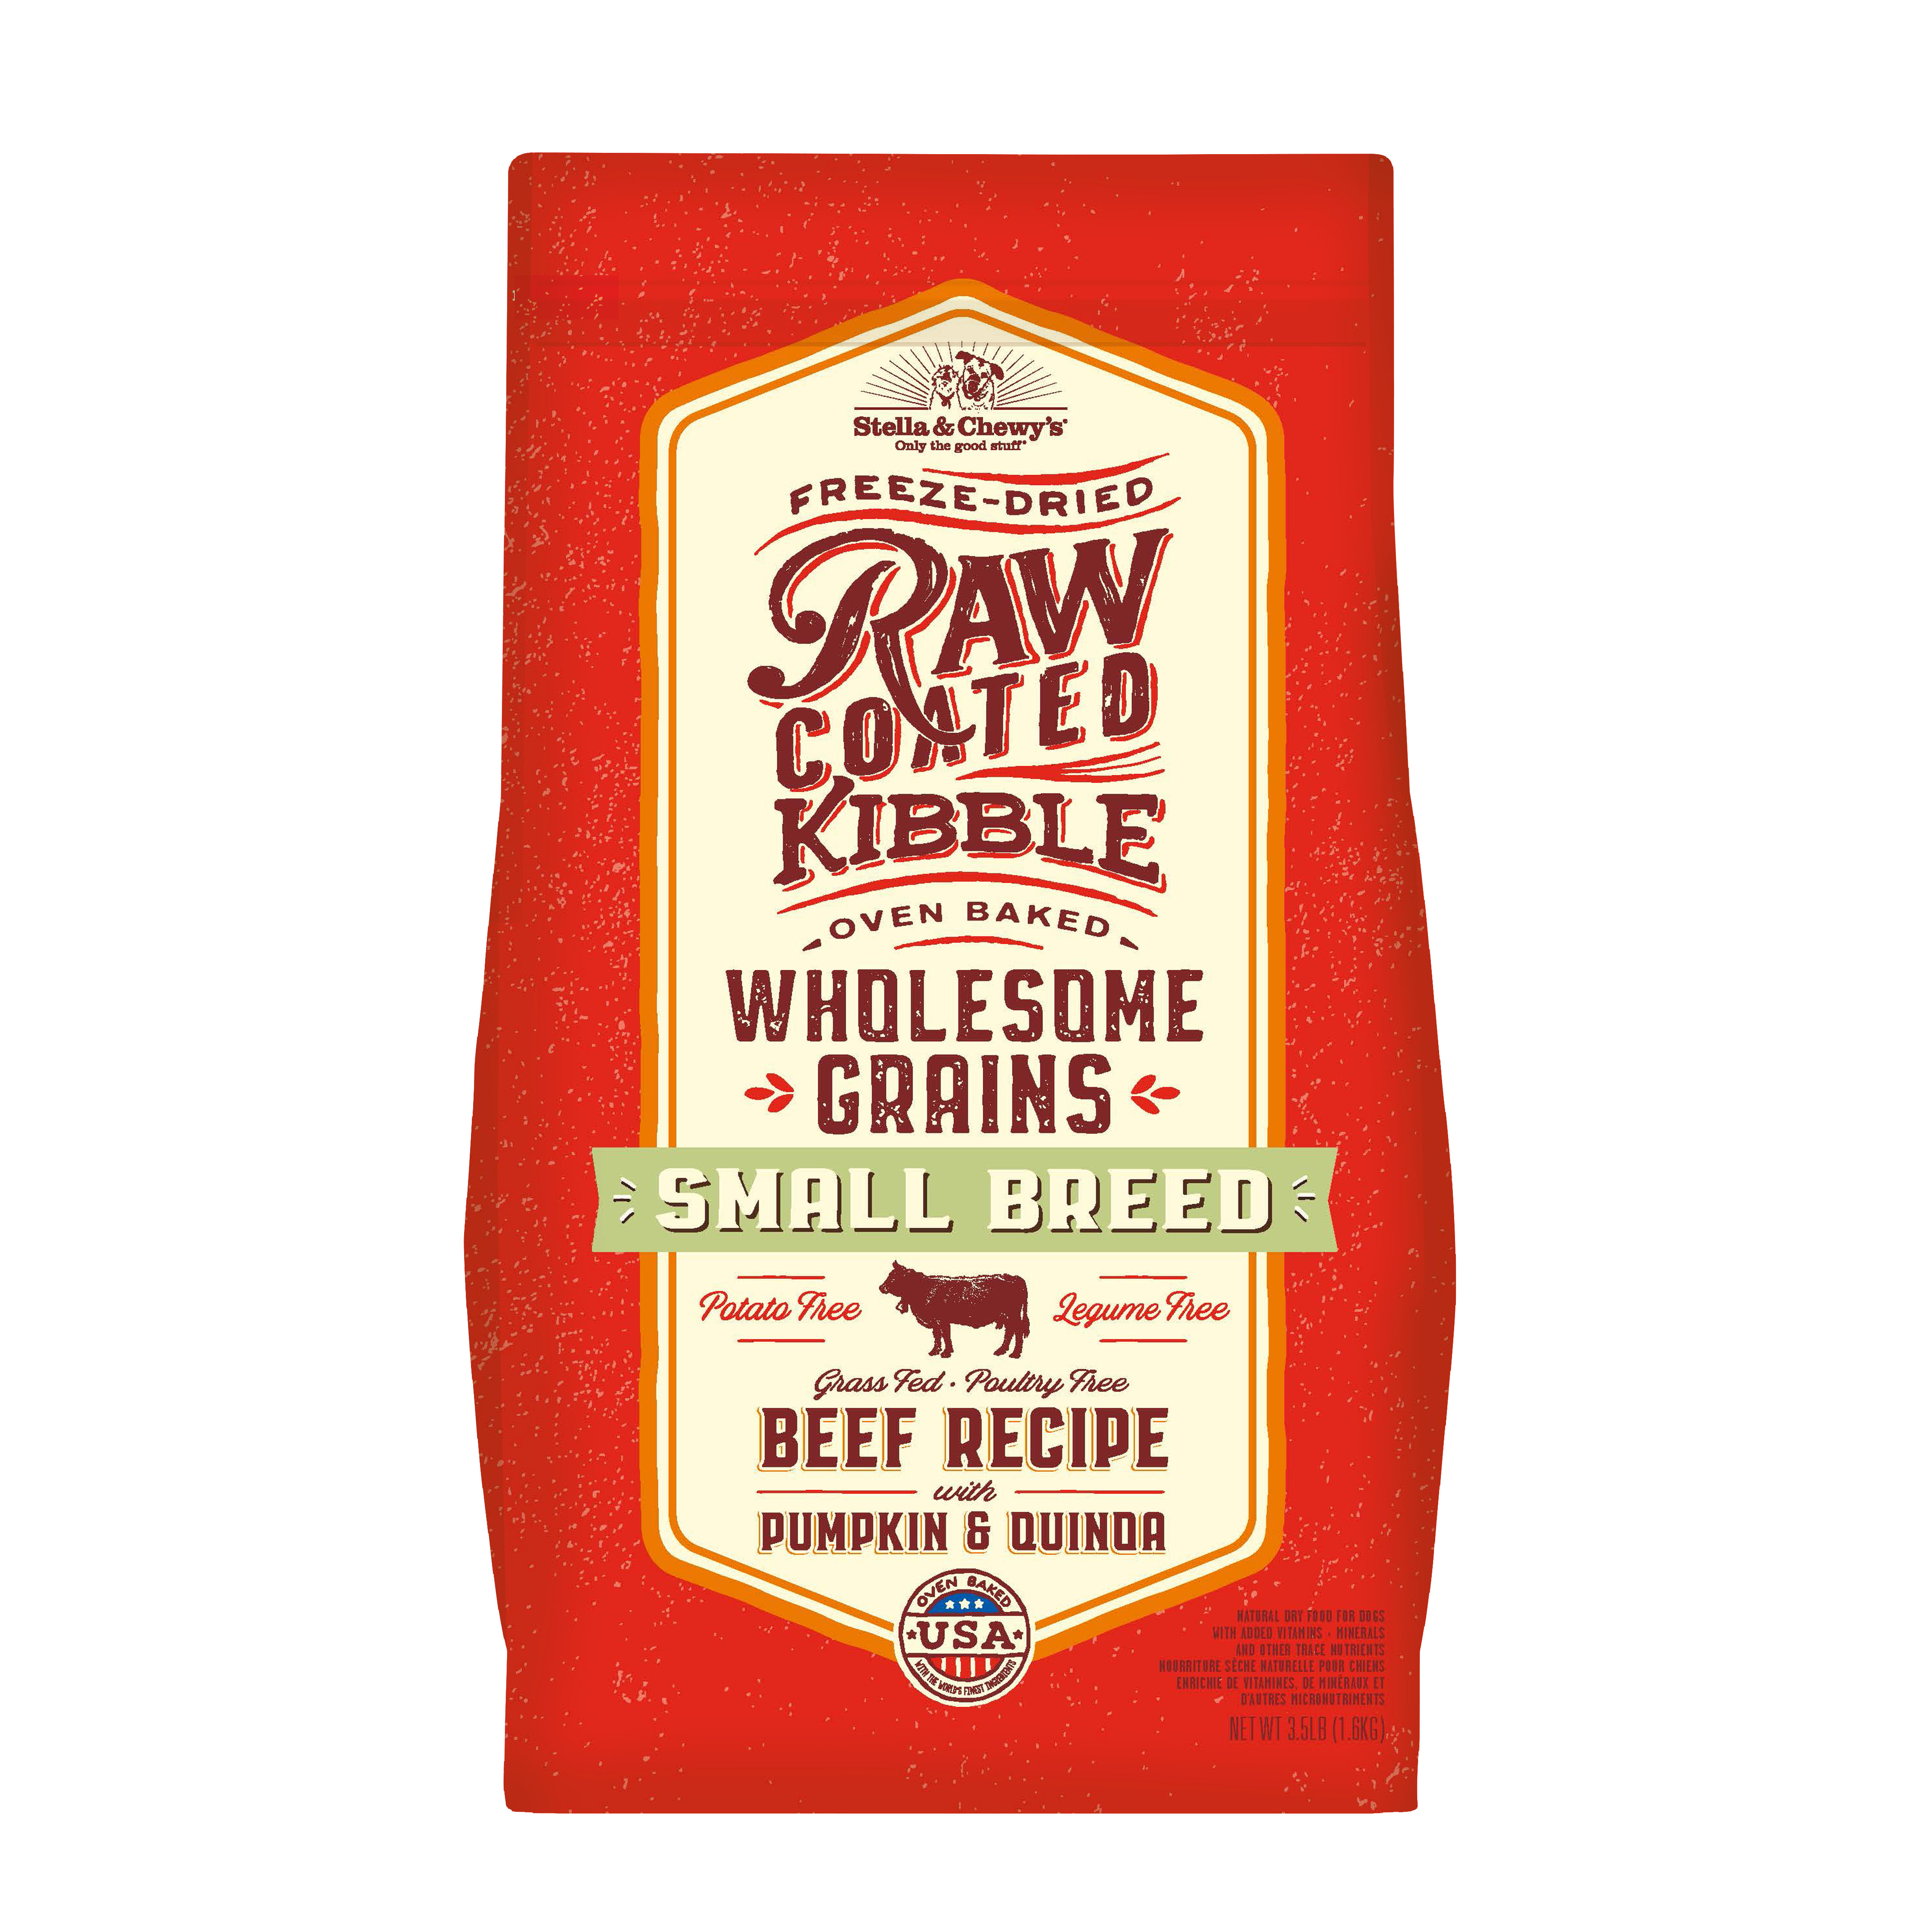 Stella & Chewy's Raw Coated Kibble with Wholesome Grains Small Breed Beef, Pumpkin & Quinoa Dry Dog Food, 3.5-lb